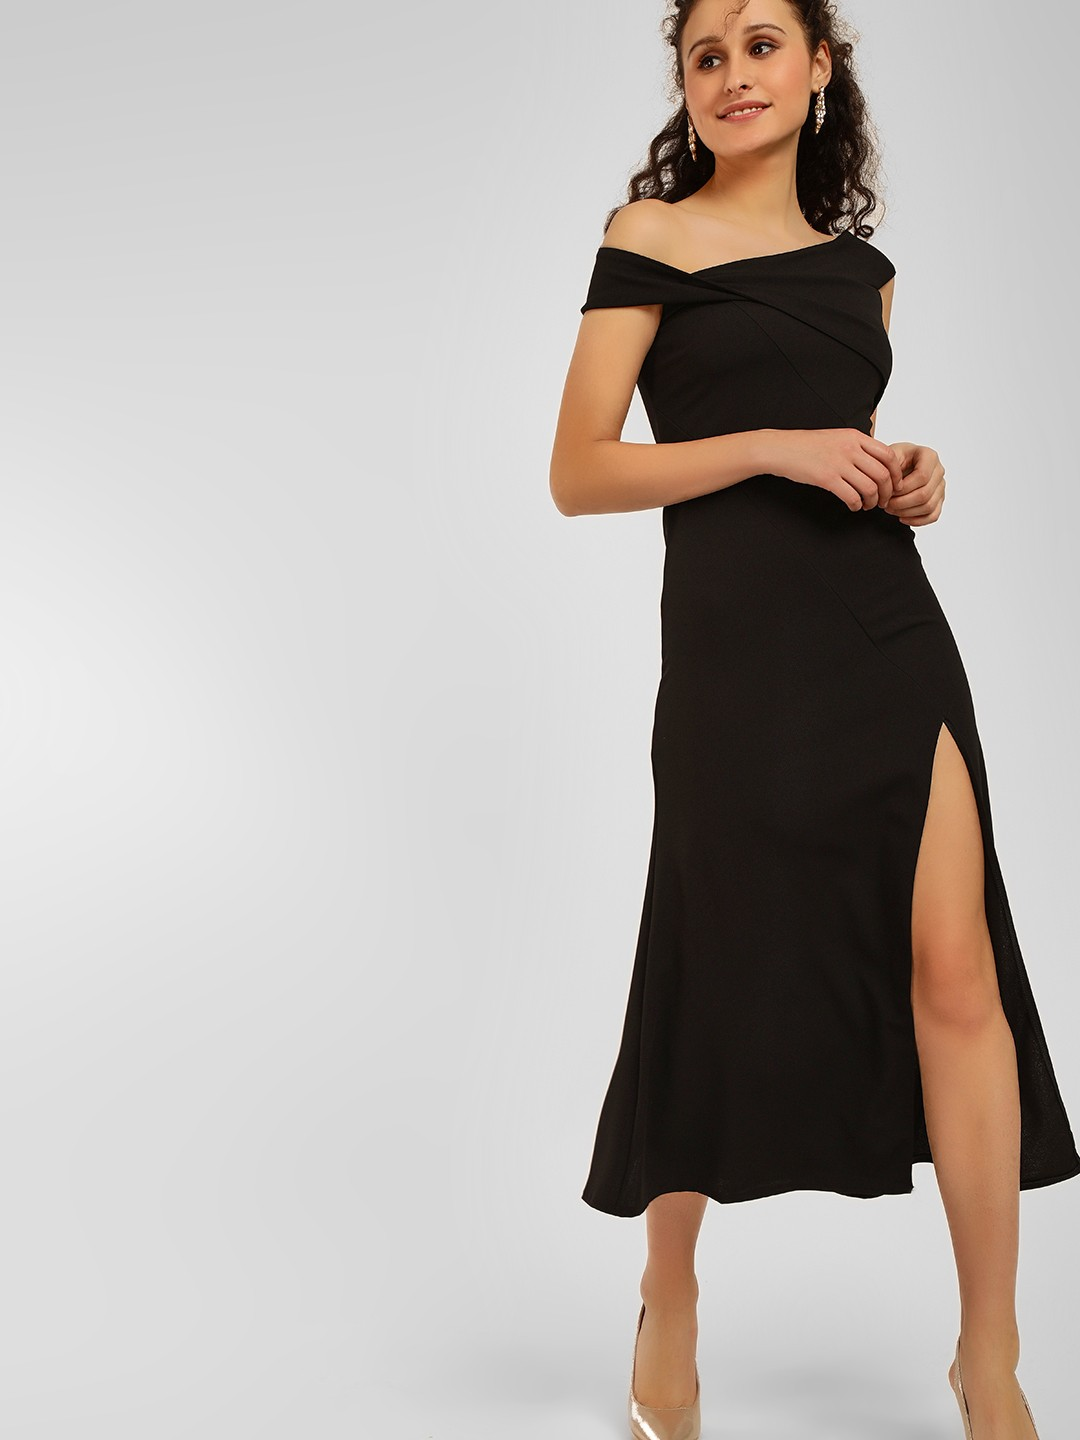 Origami Lily Black One Shoulder Maxi Dress 1